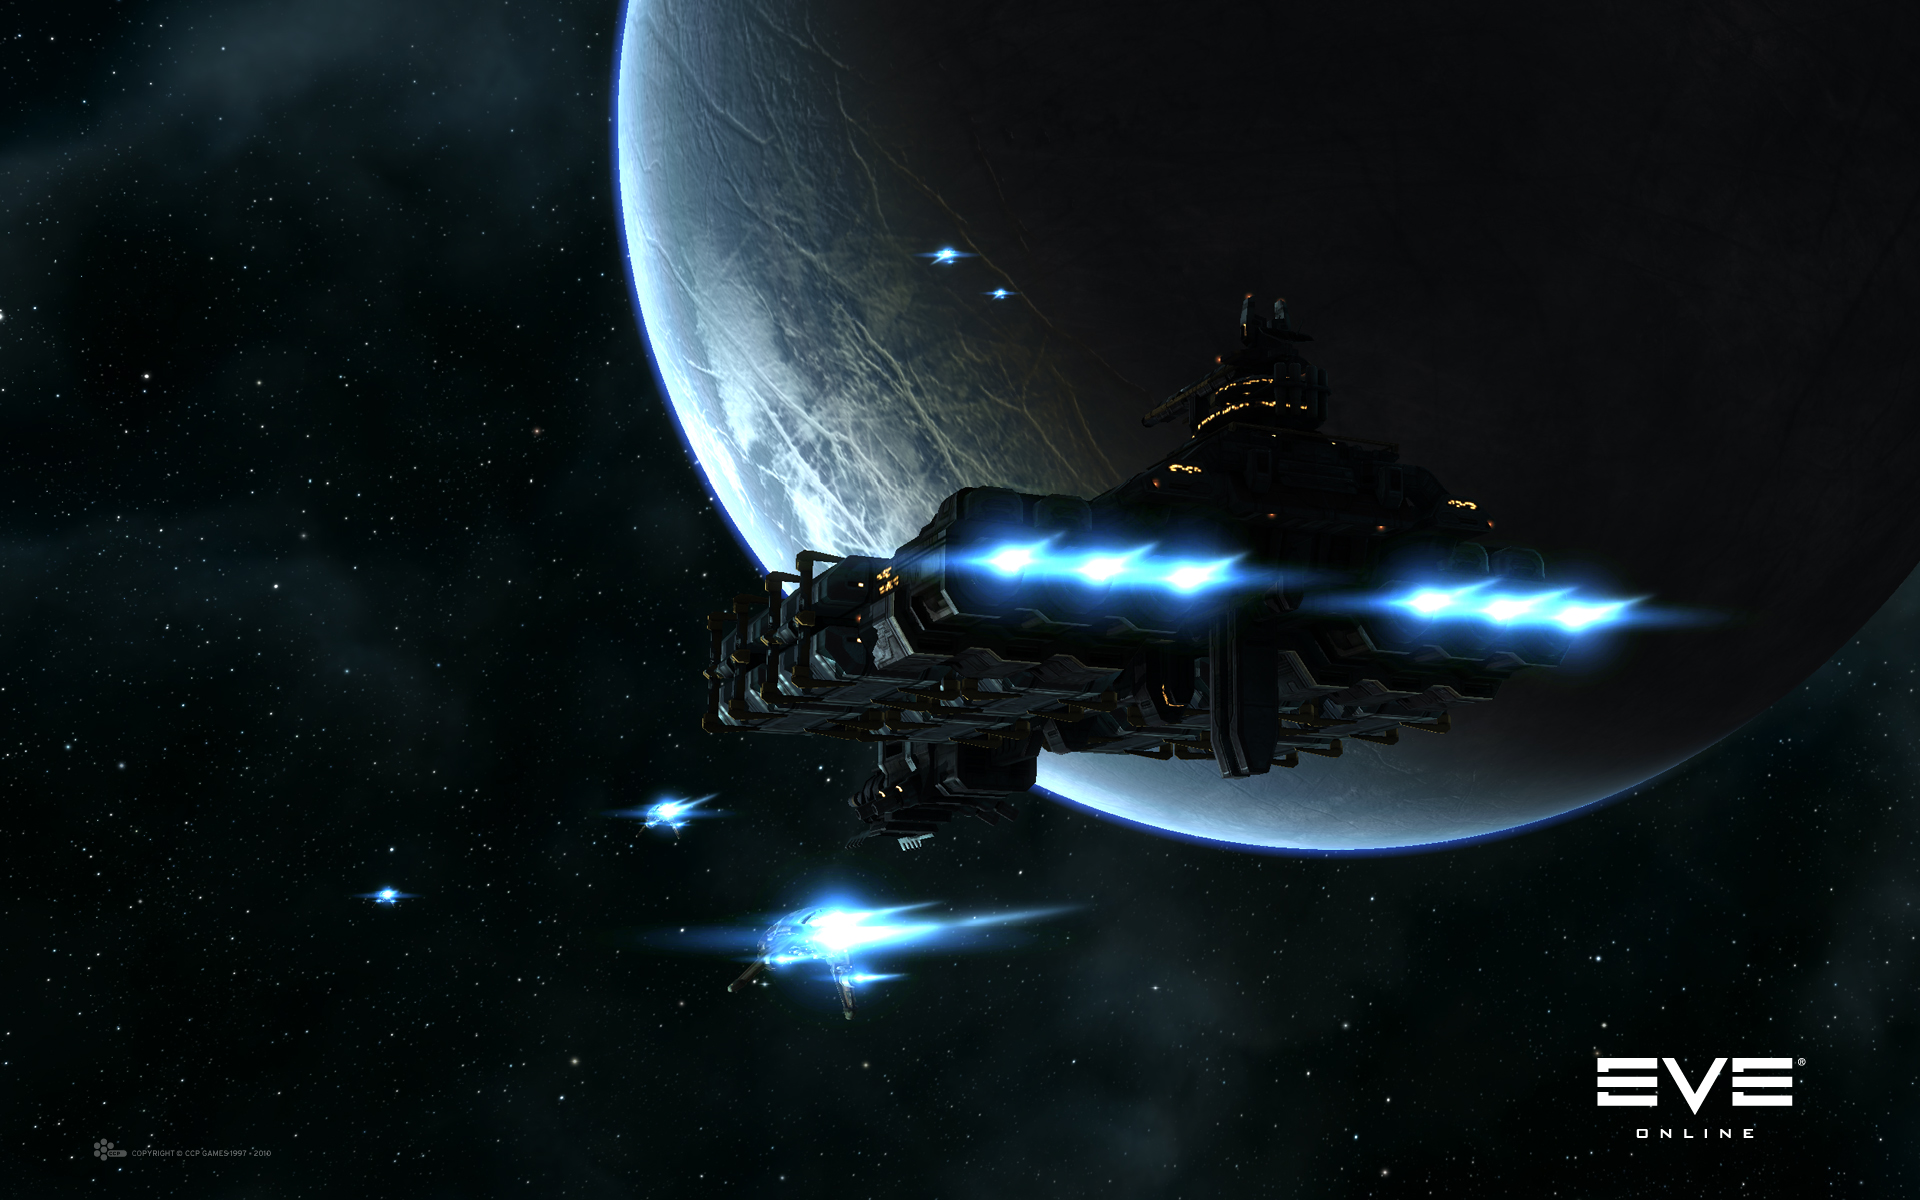 eve online backgrounds A2